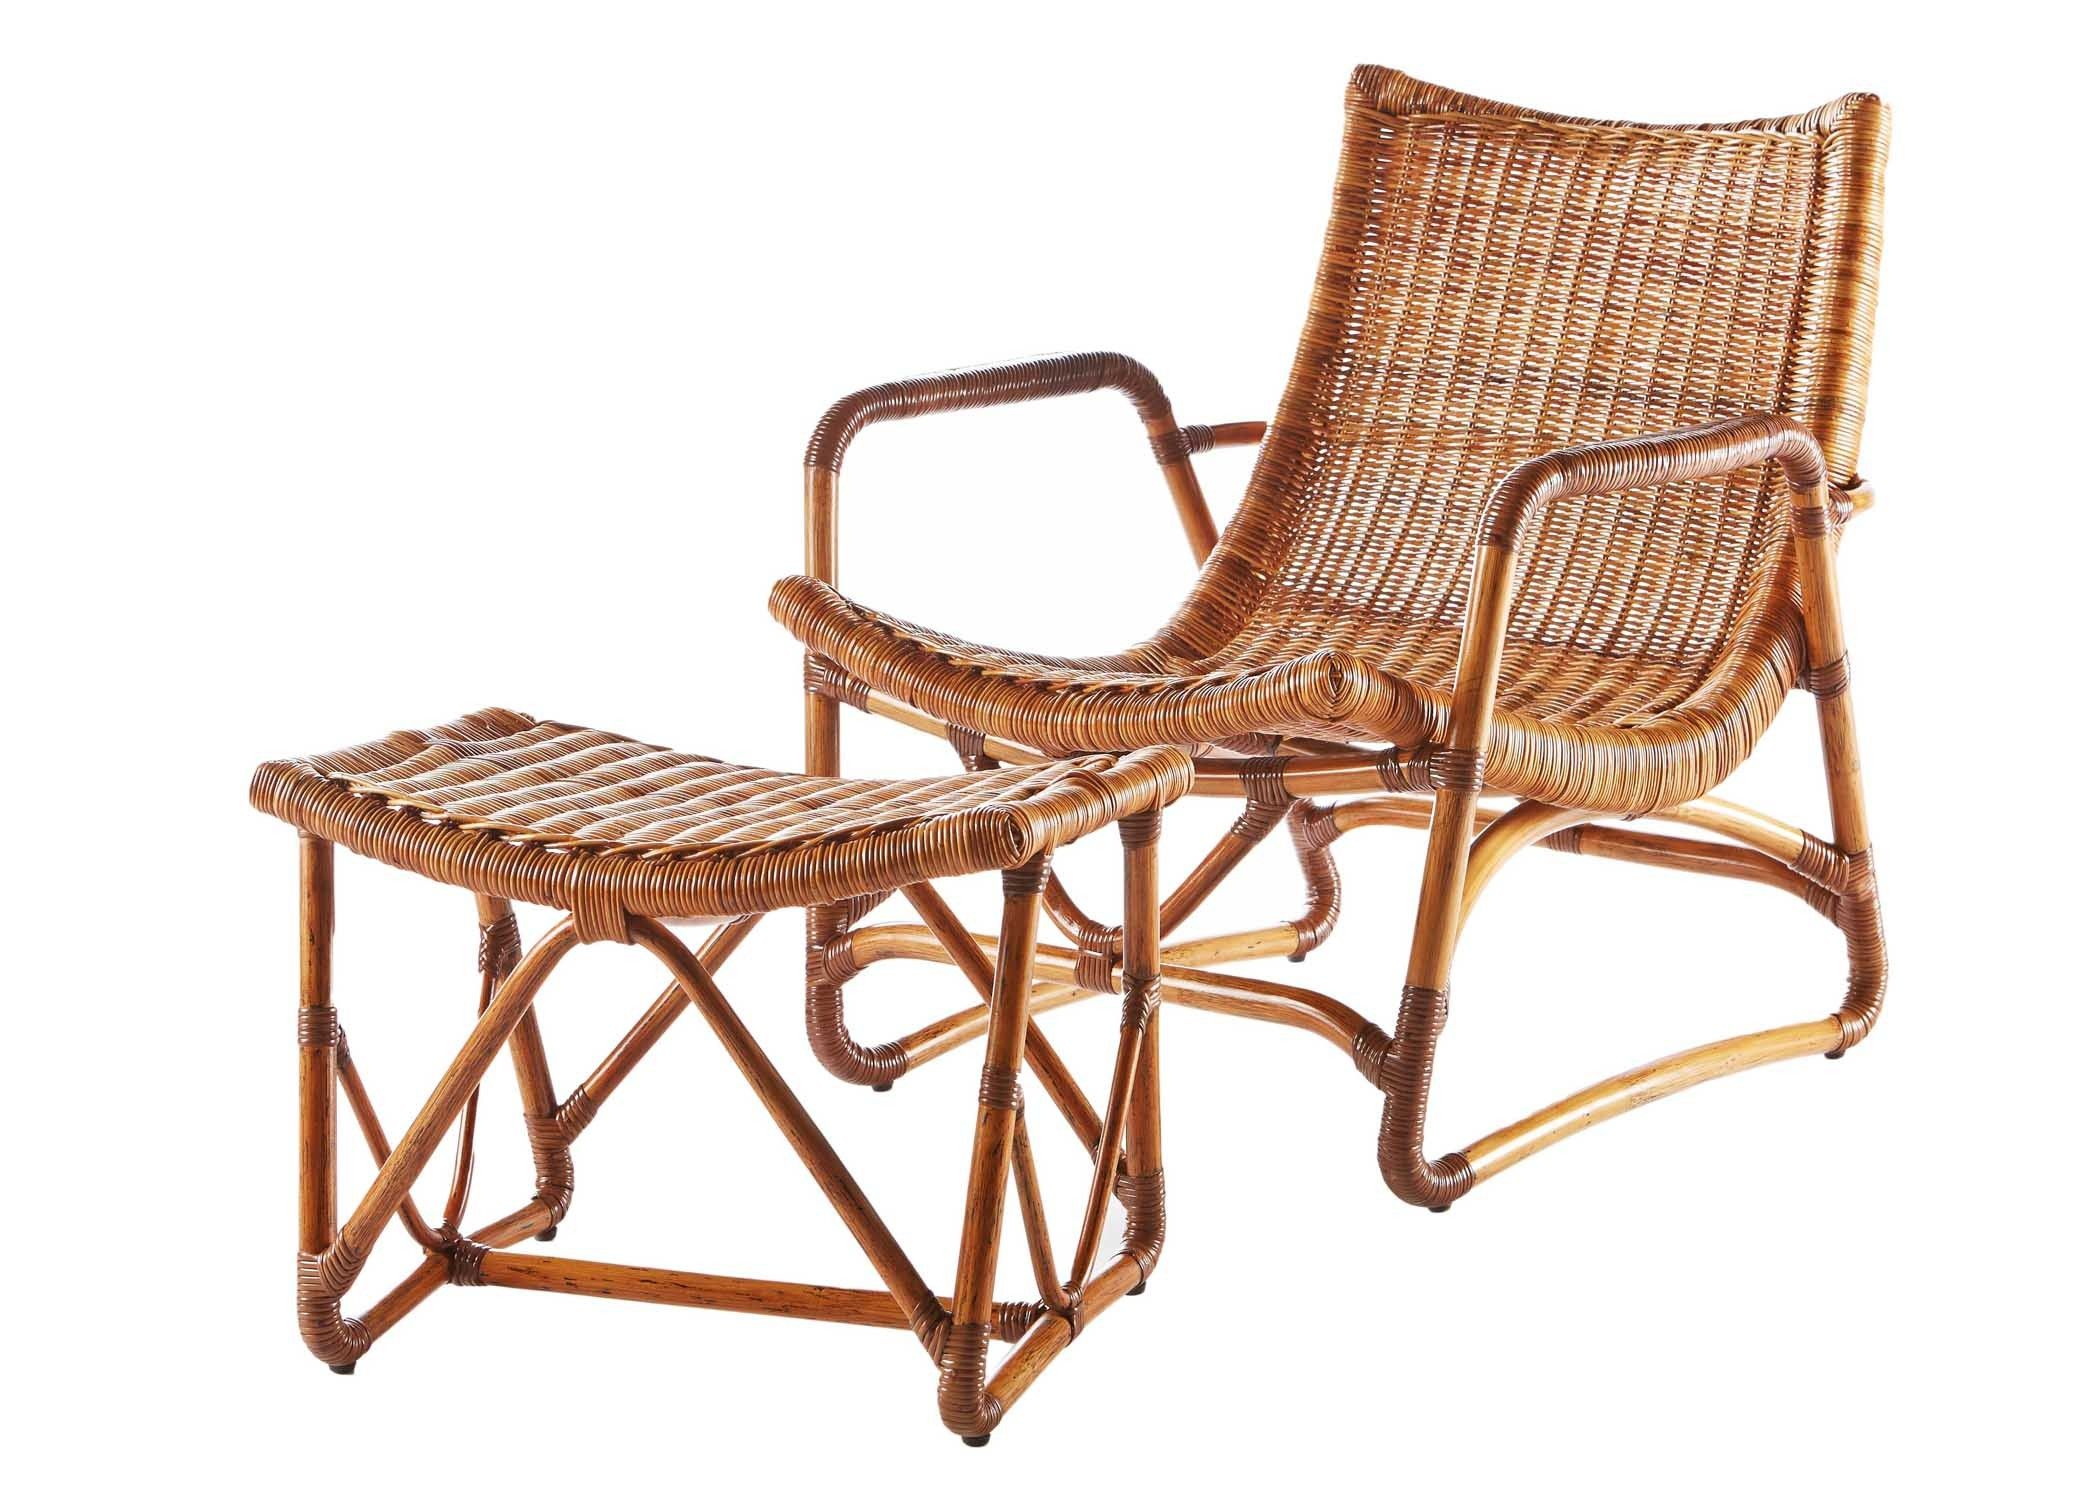 Bridgid Lounge Chair Outdoor Chairs Chair And Ottoman Indoor Outdoor Chair